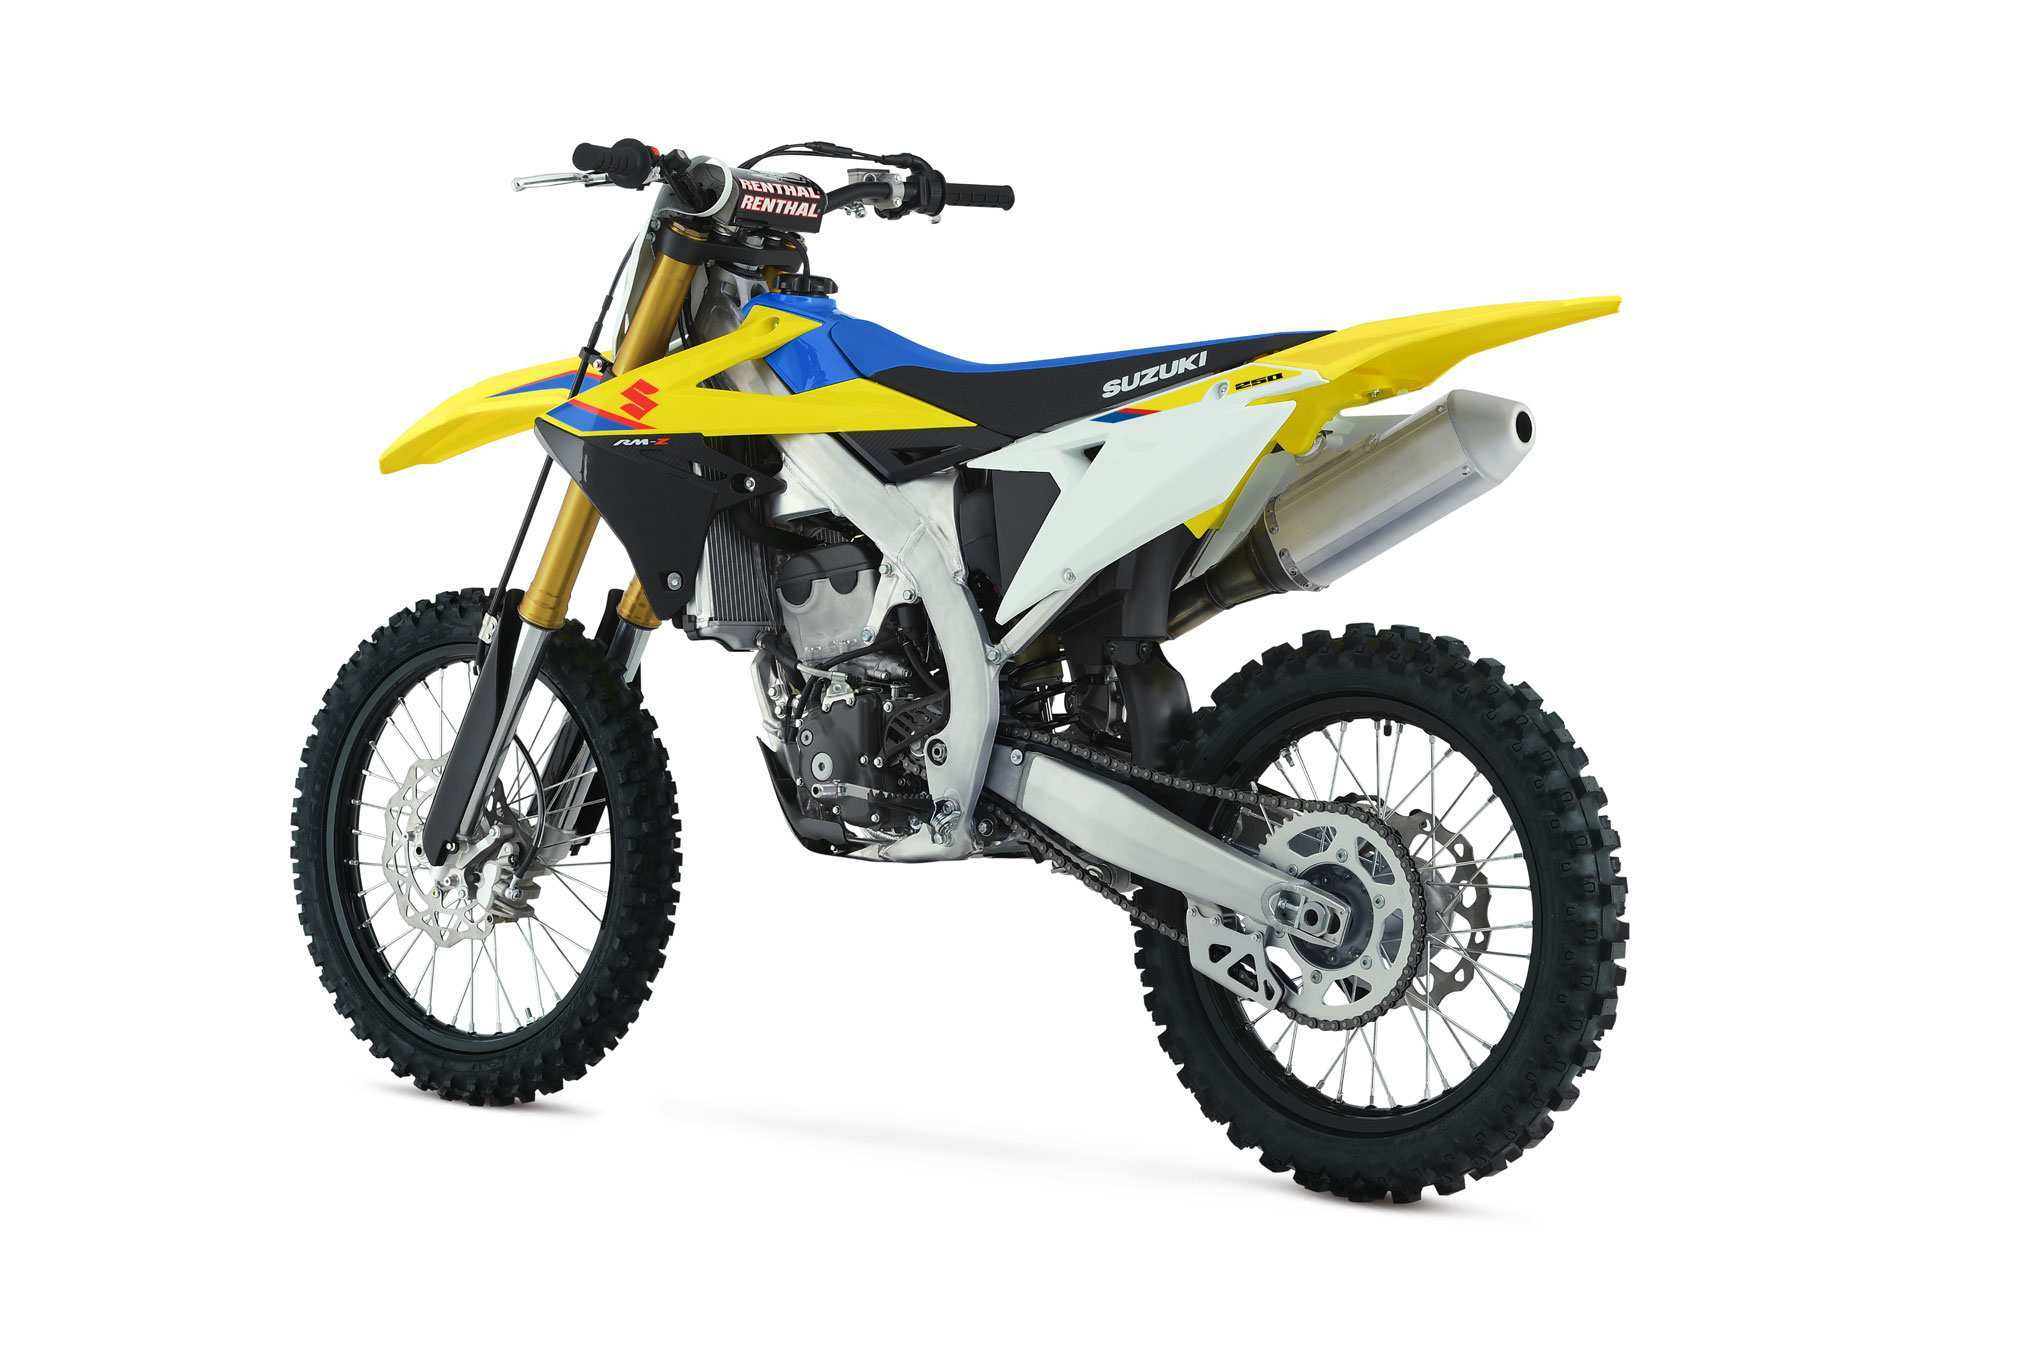 23 All New 2019 Suzuki Rm Pricing for 2019 Suzuki Rm